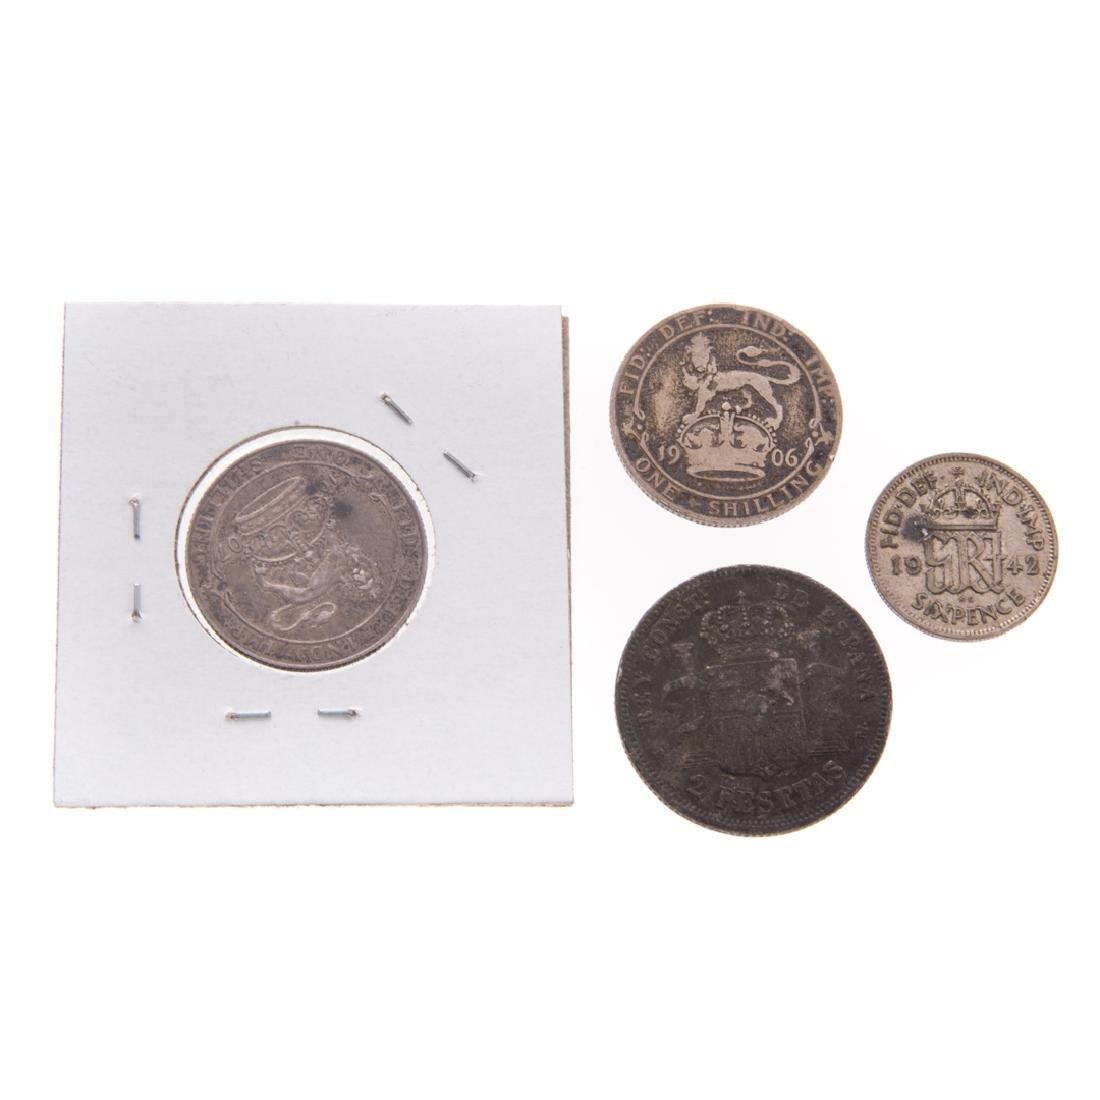 [World] 18th - 20th Century Silver Coins - 3